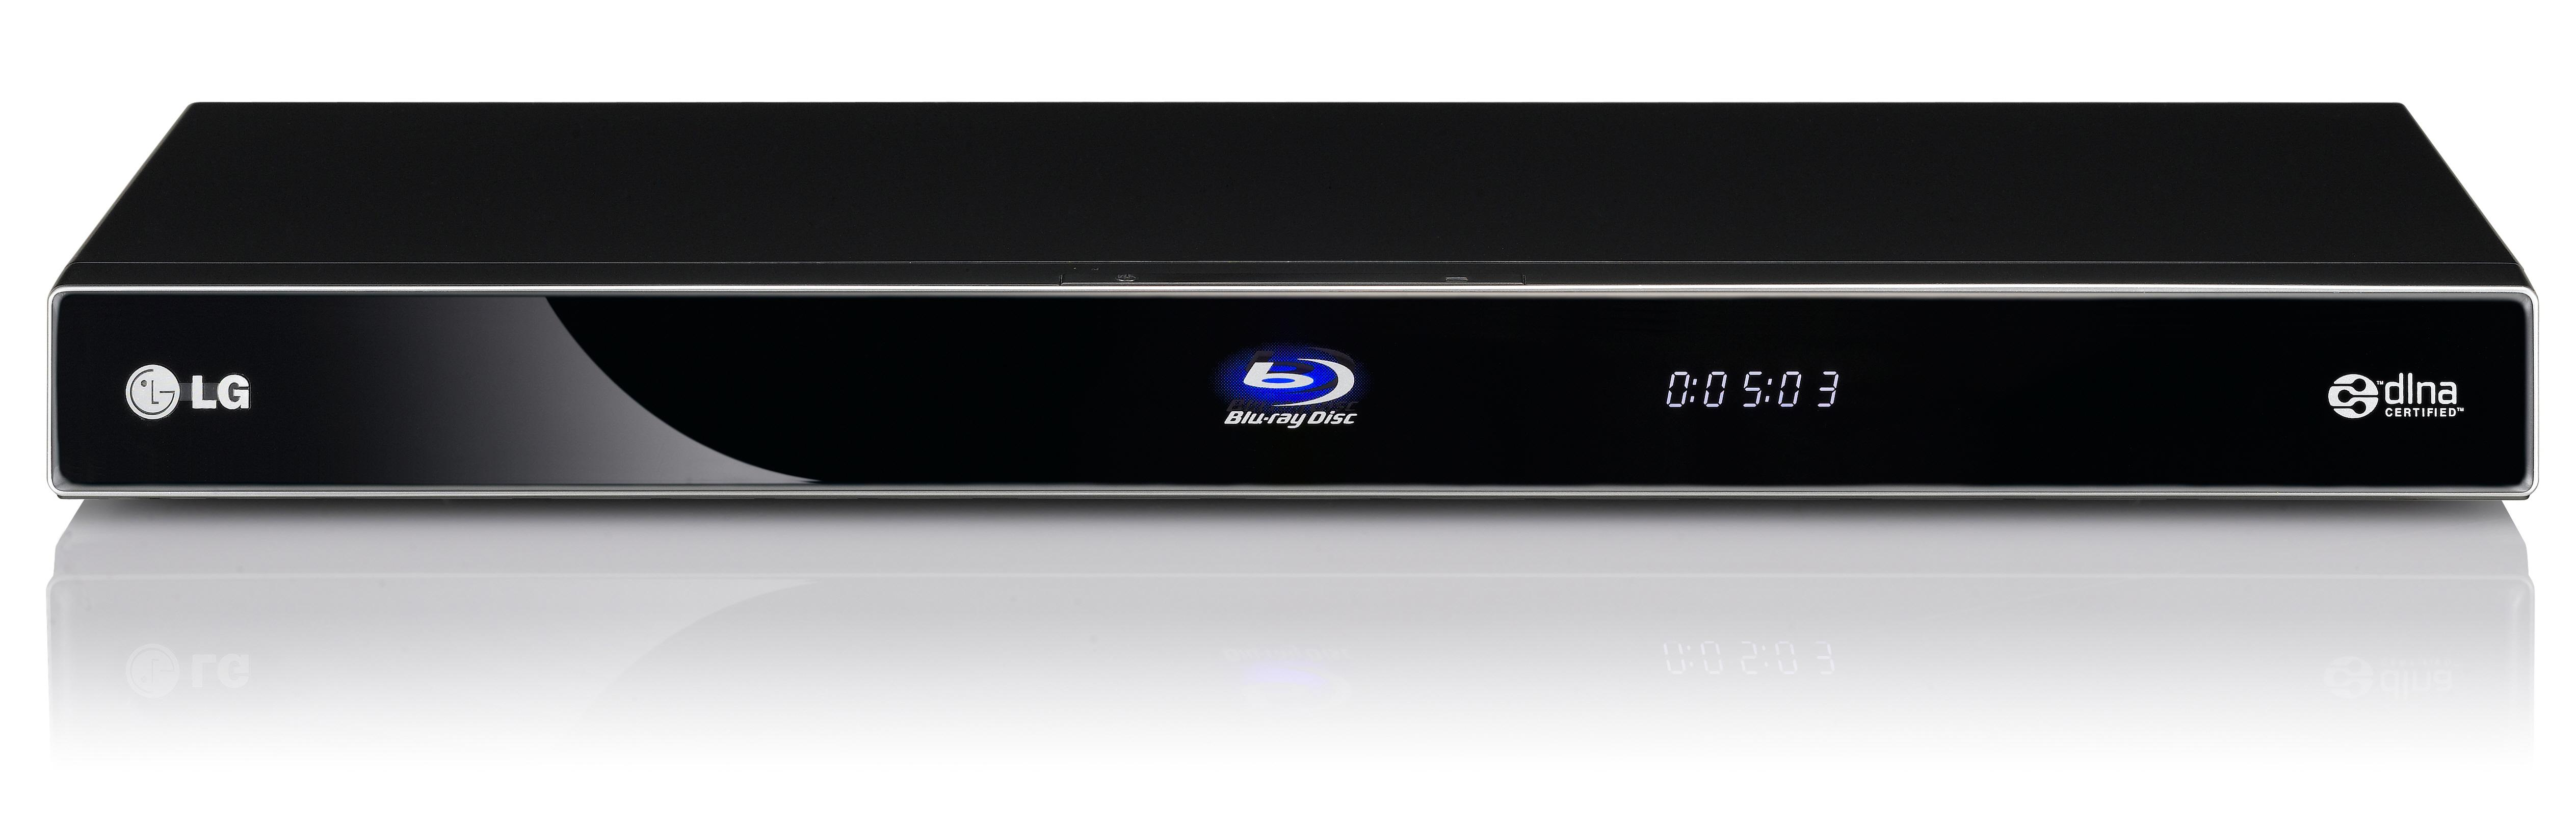 lg blu ray player manual bd550